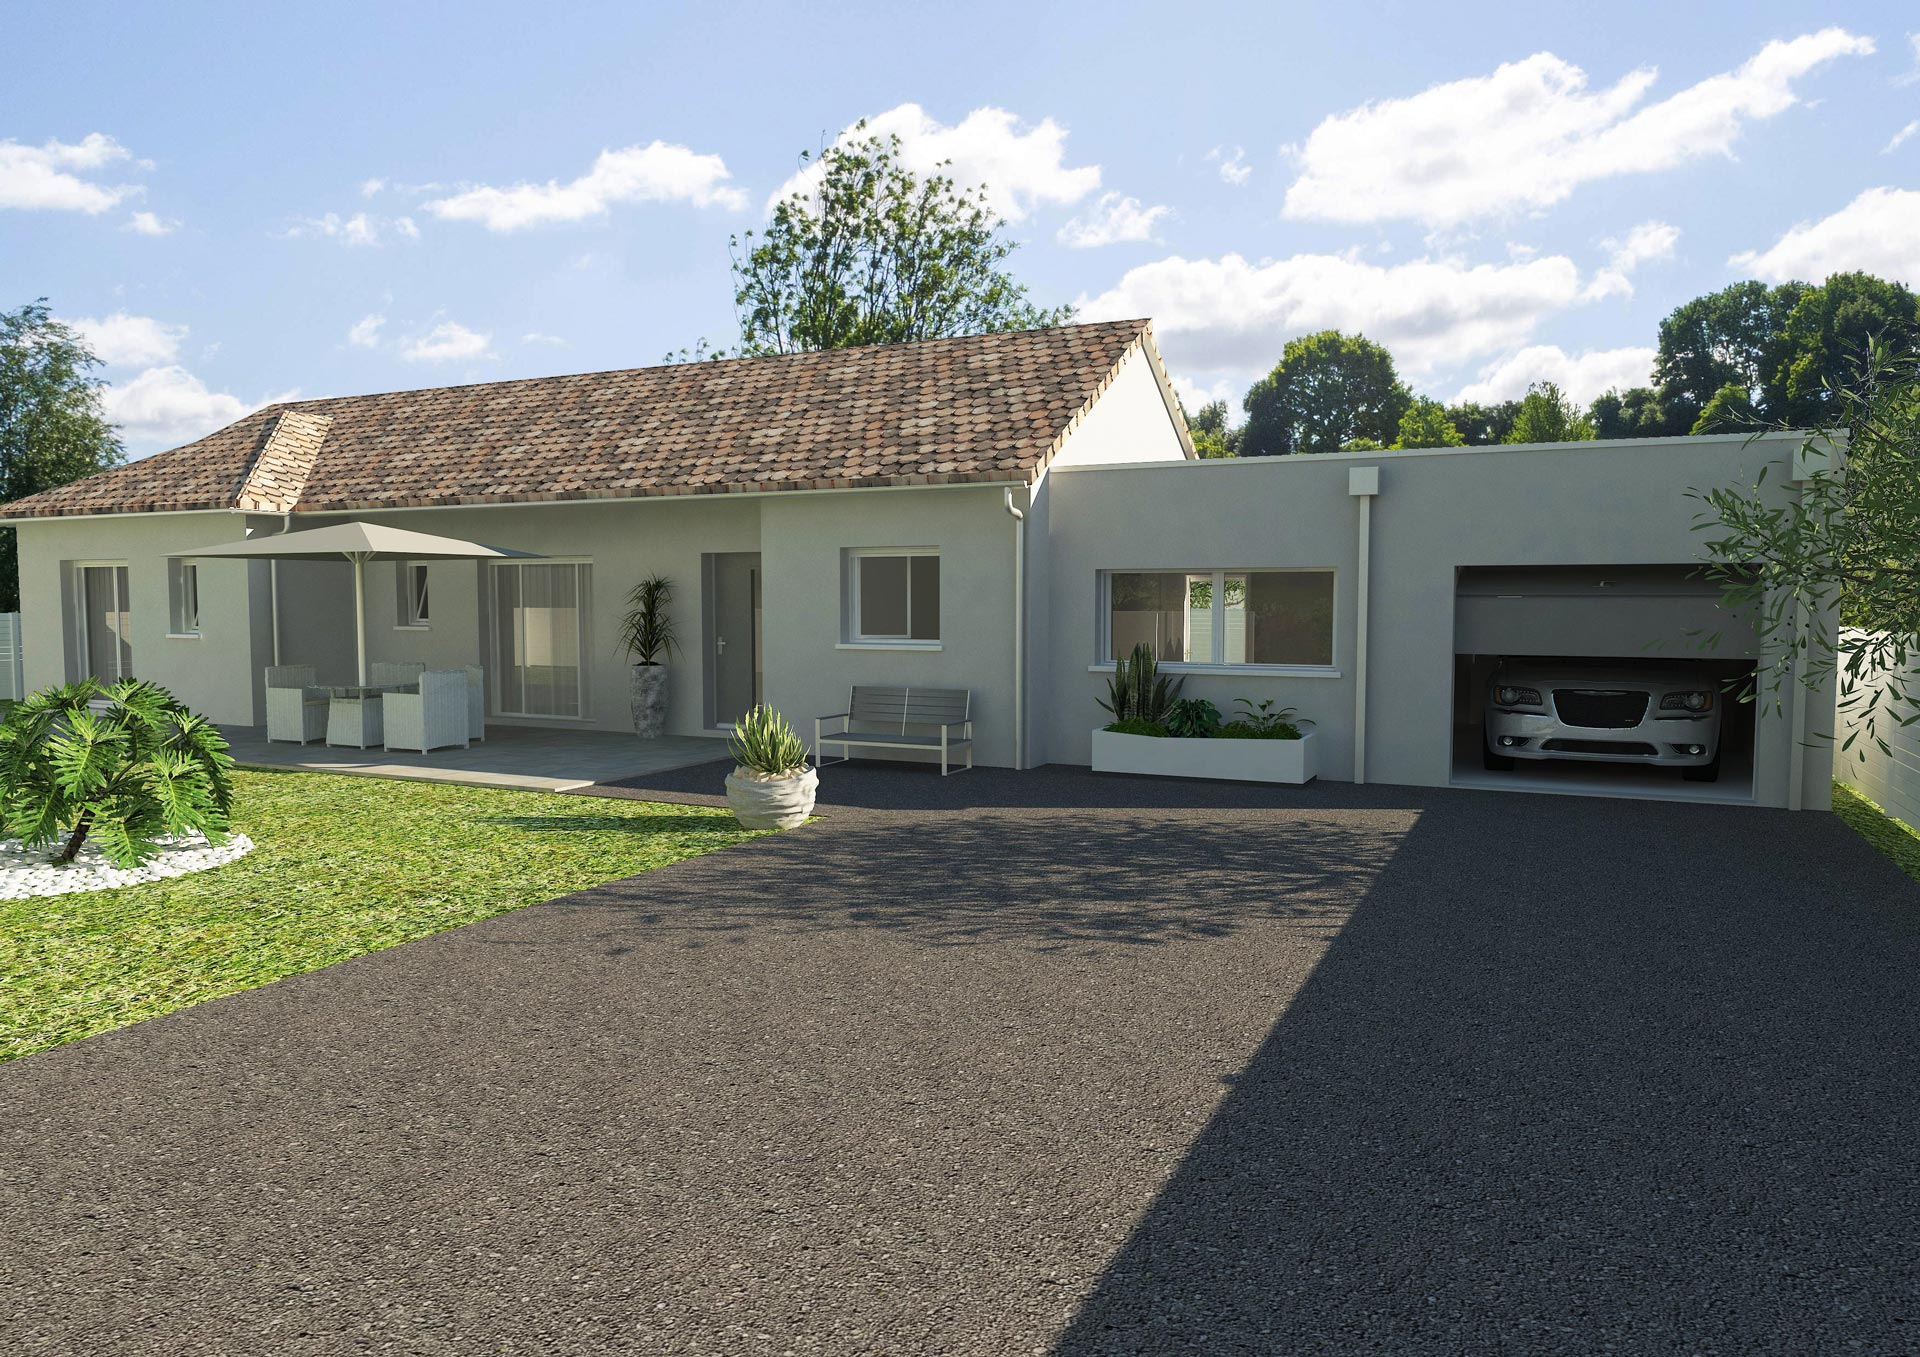 Construction Et Isolation Garage Avec Cybel Extension - Extension garage toit plat